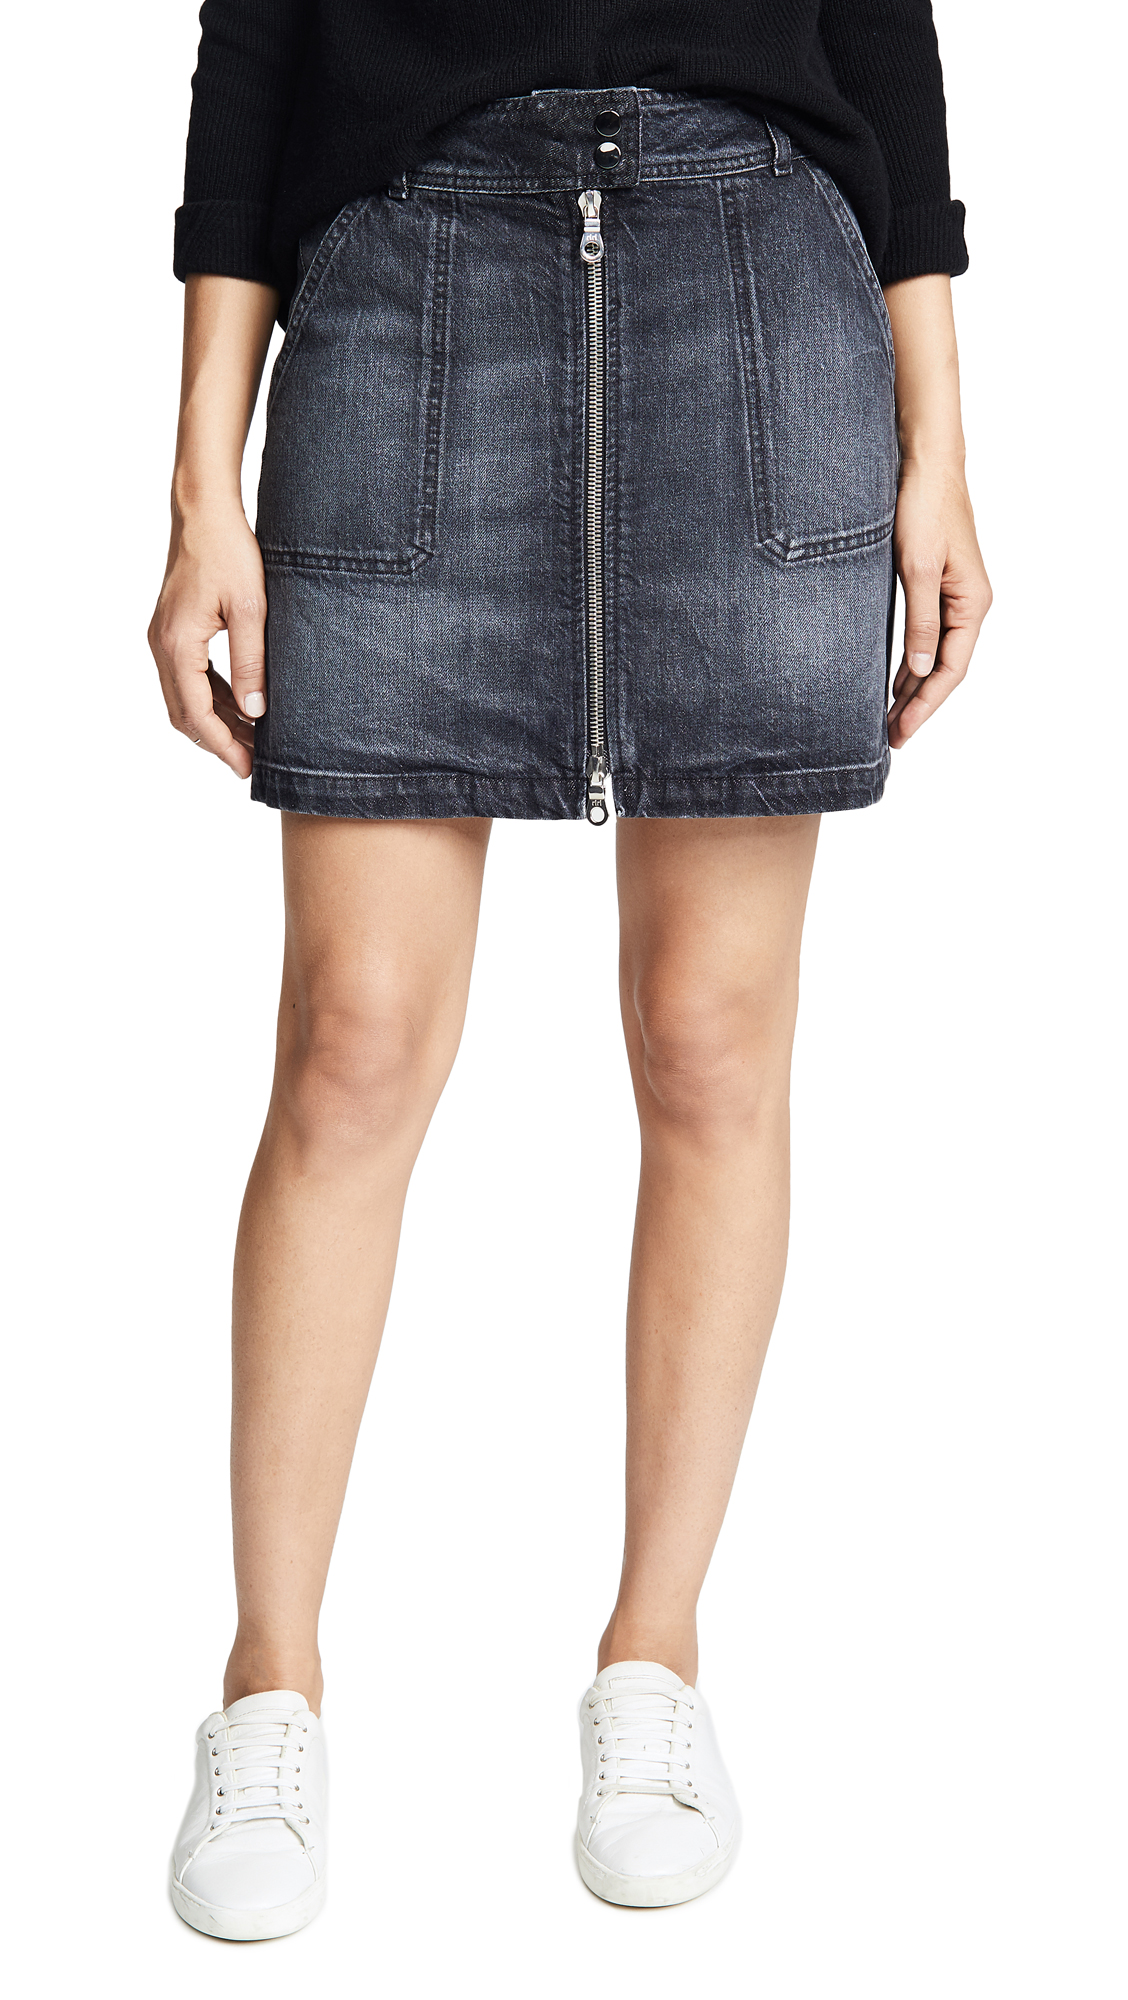 ei8htdreams Zip Front A-Line Denim Skirt In Black